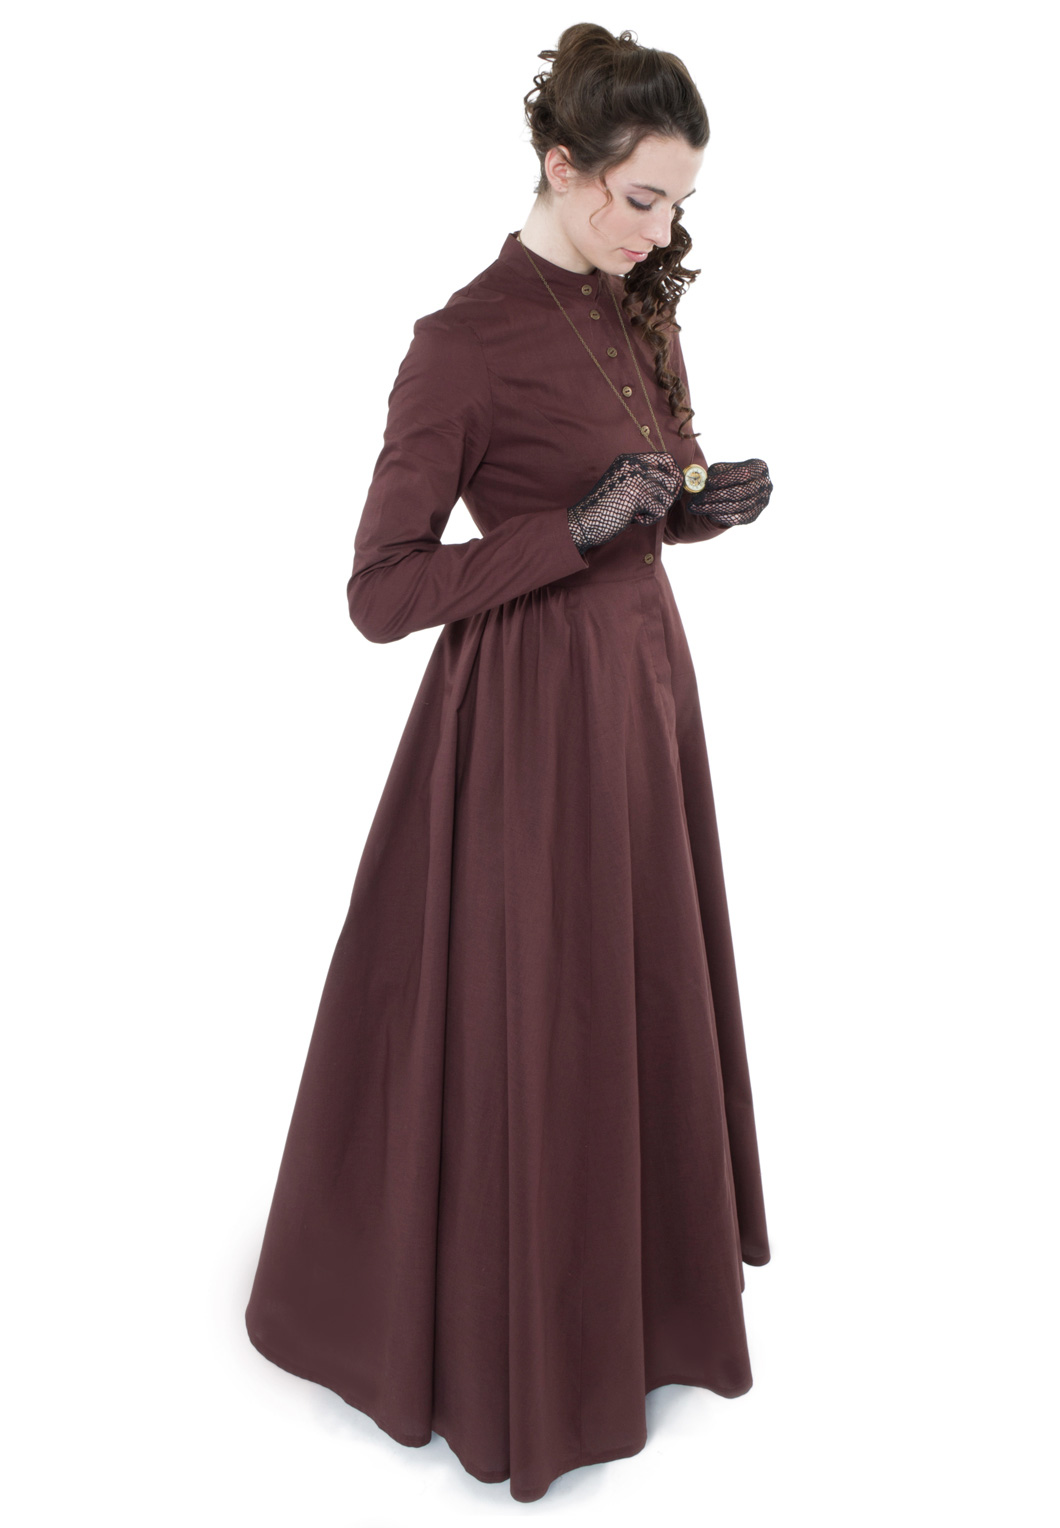 c9a577615cd4 Modest Dresses from Recollections (Page 1 of 2)